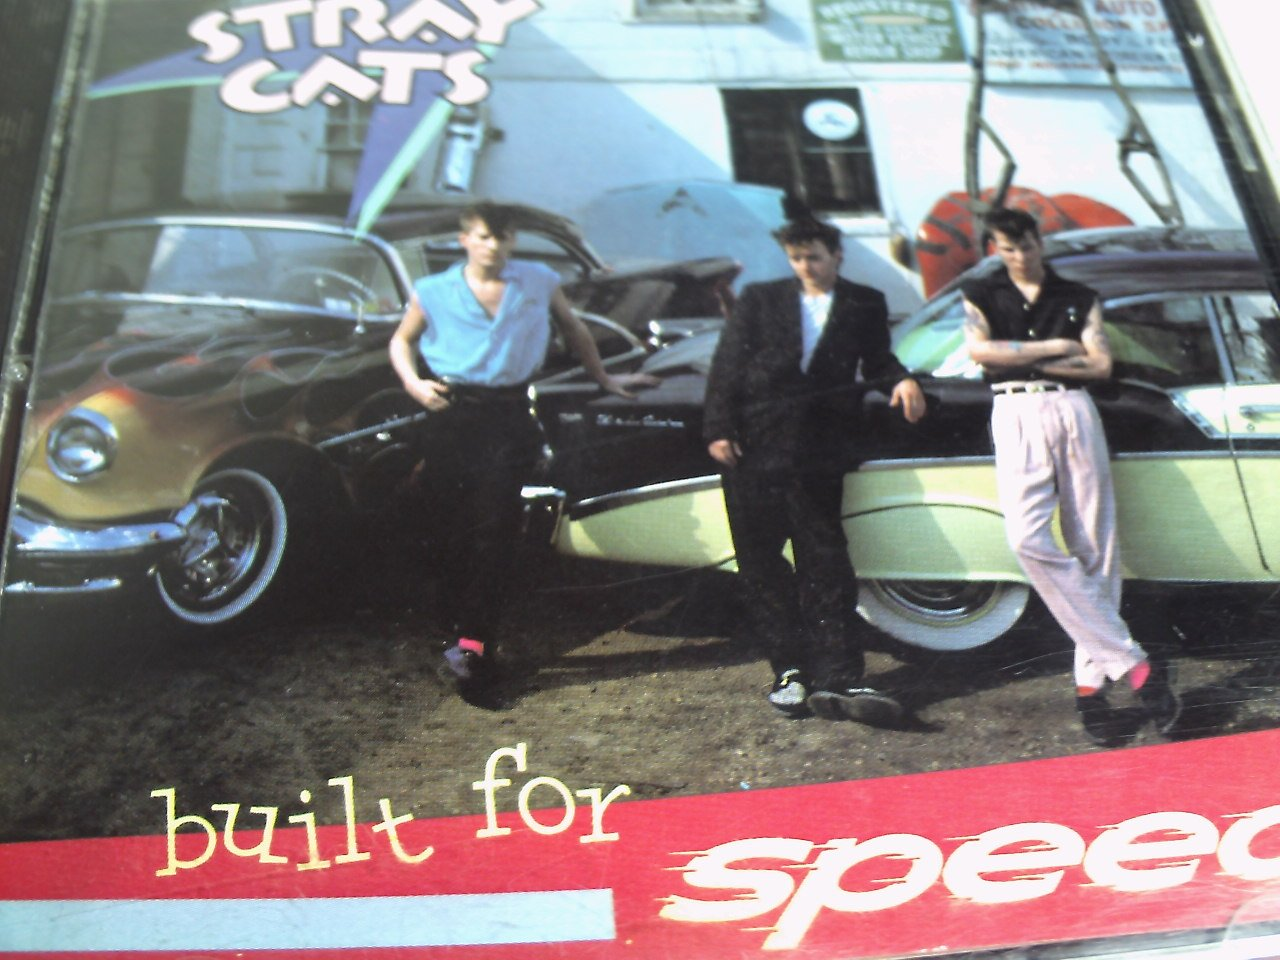 Built for Speed by EMI Distribution